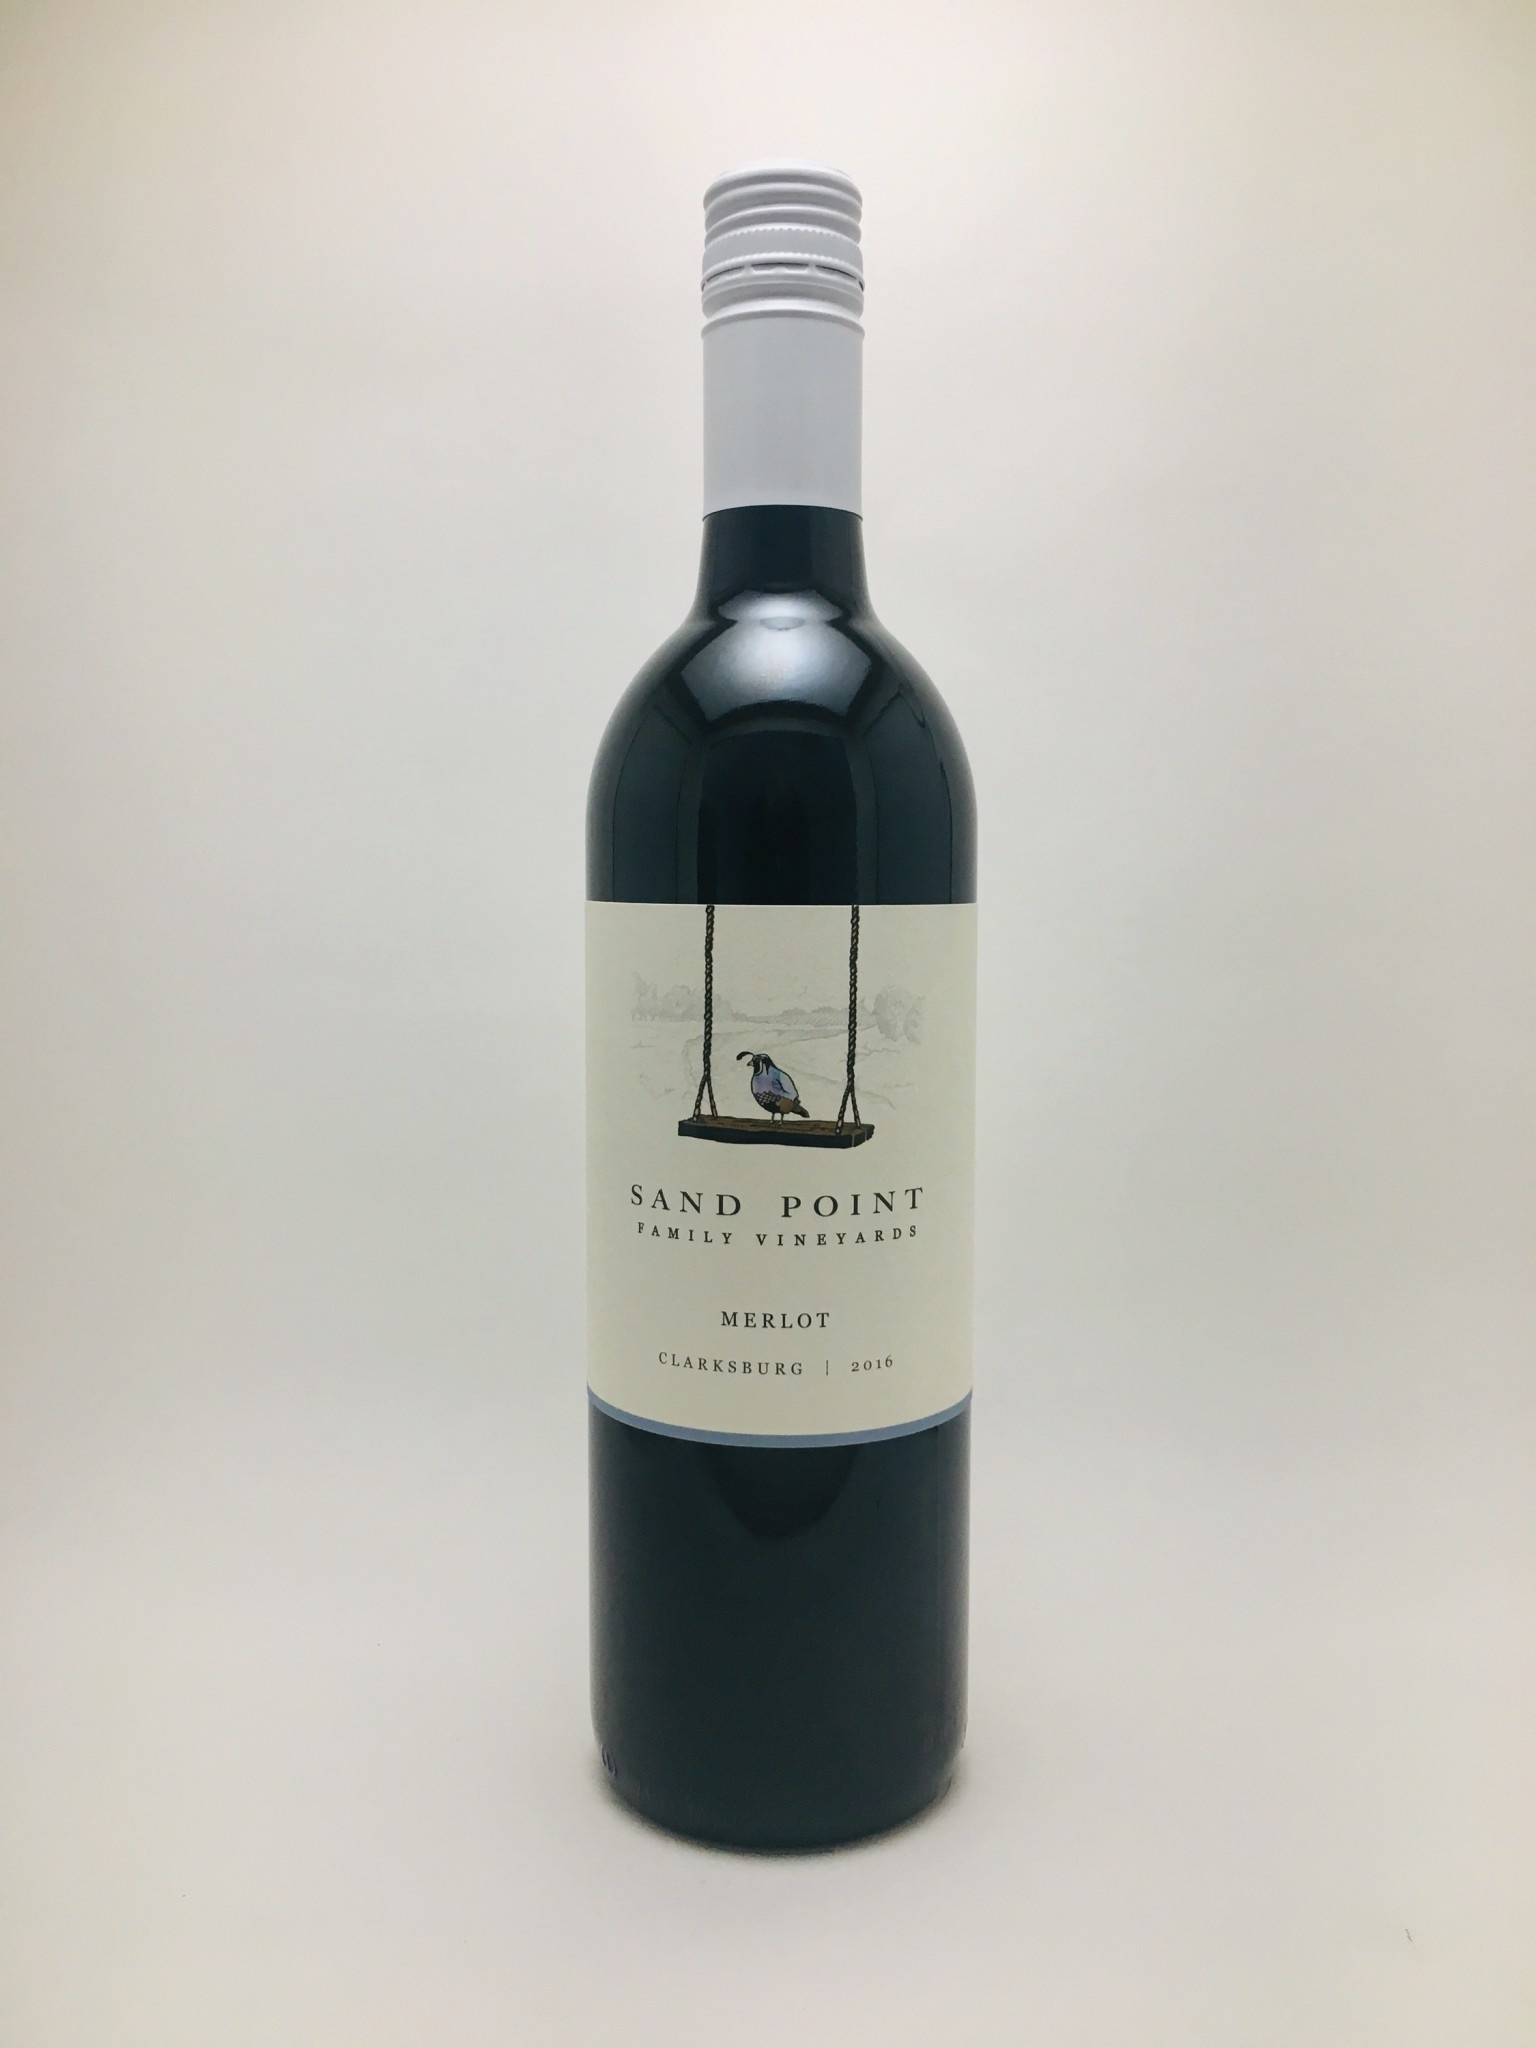 Sand Point Clarksburg CA Merlot 2016